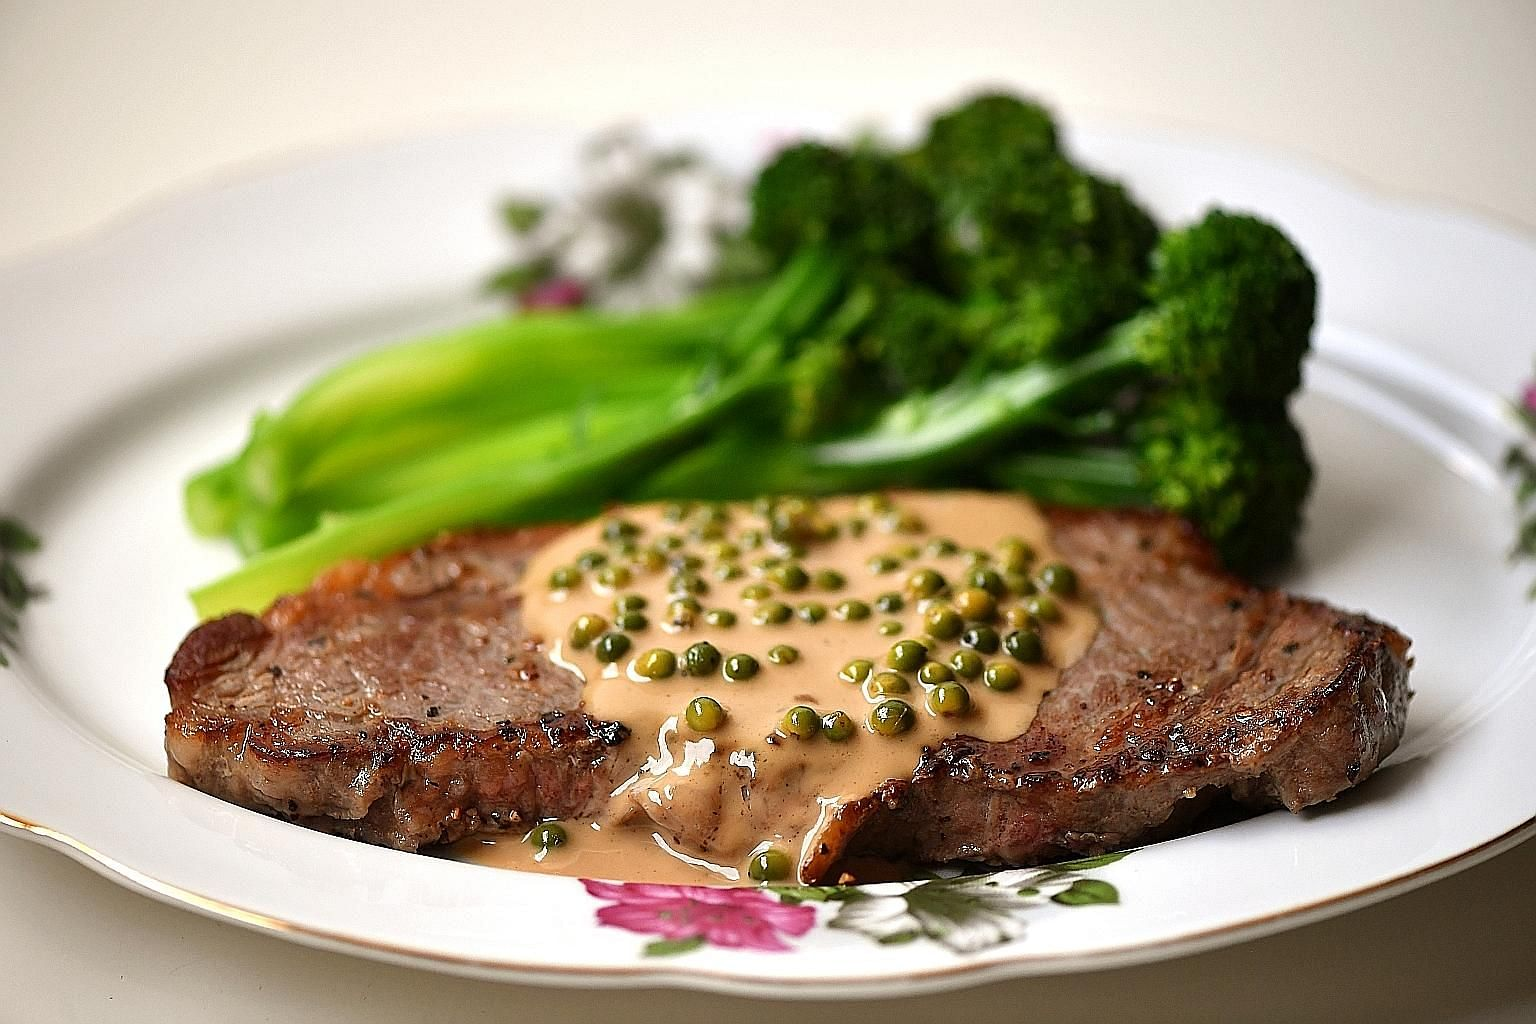 Steak sauce with green peppercorns is easy to make and rewarding.